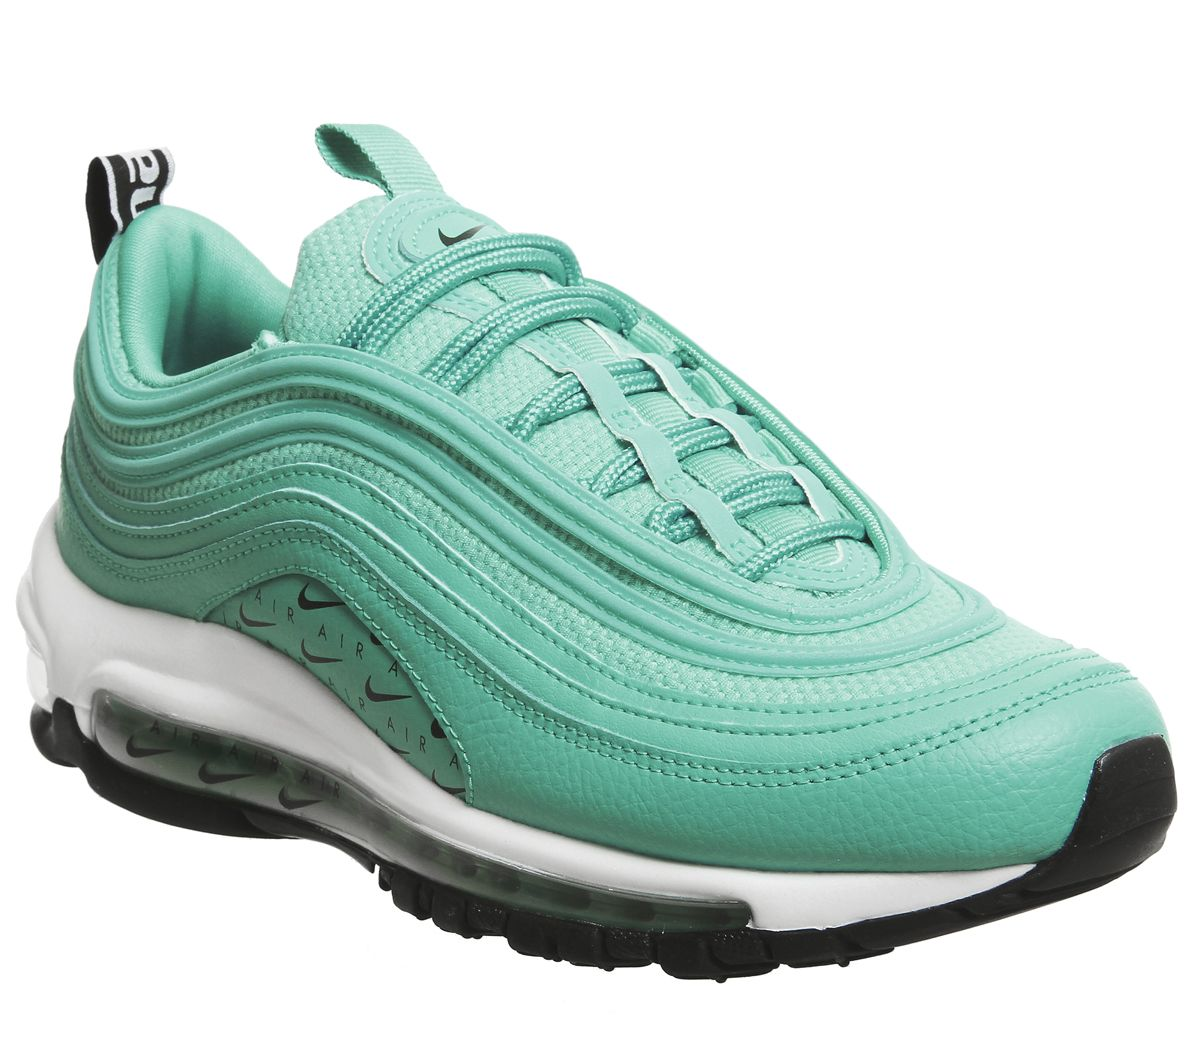 best website 84ce3 aebed Air Max 97 Trainers